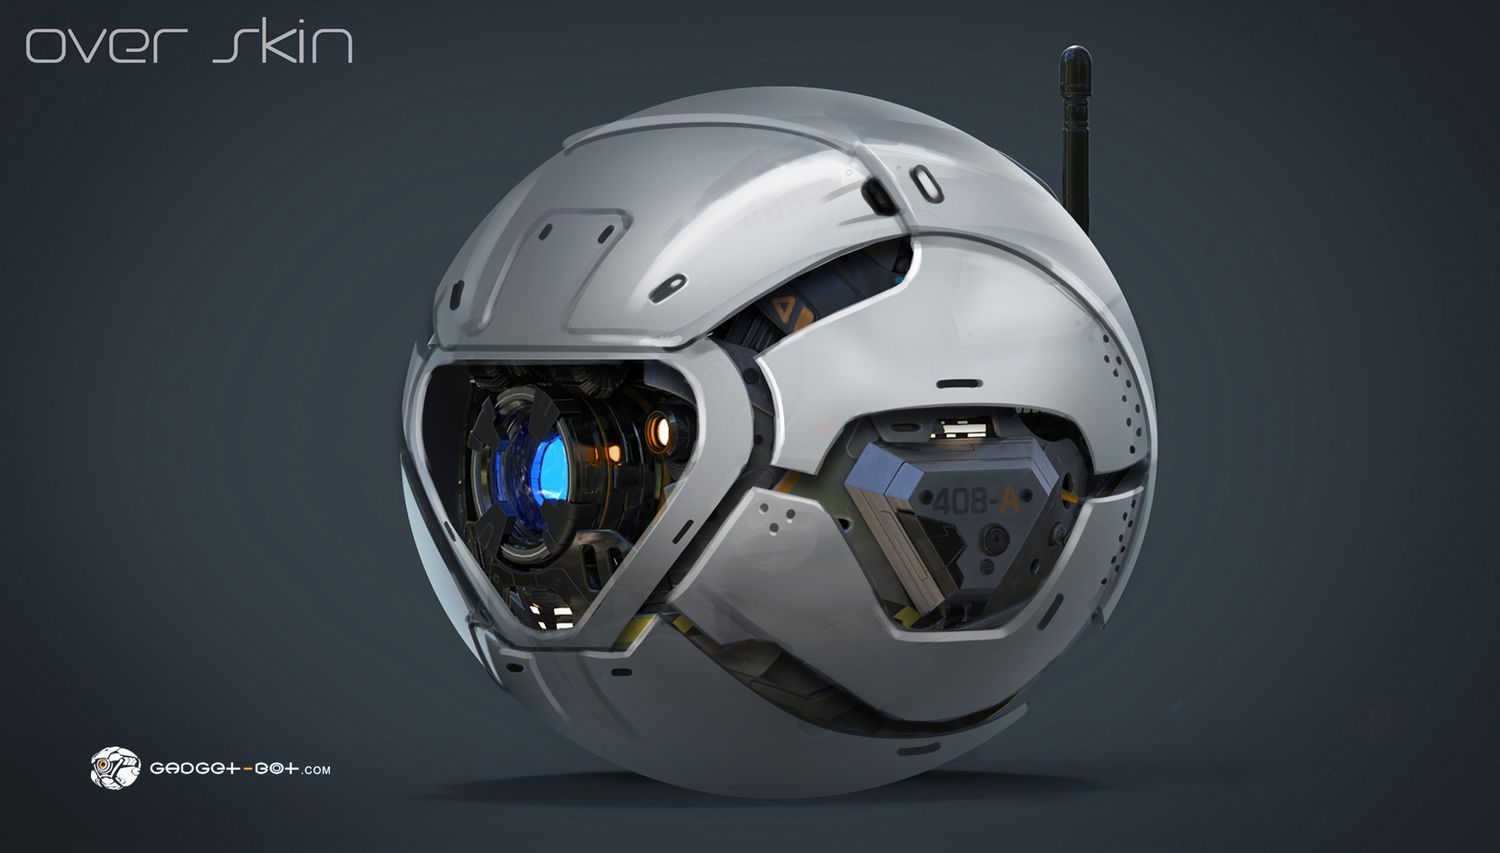 This looks like wheatley from portal | Star Wars | Robot ...